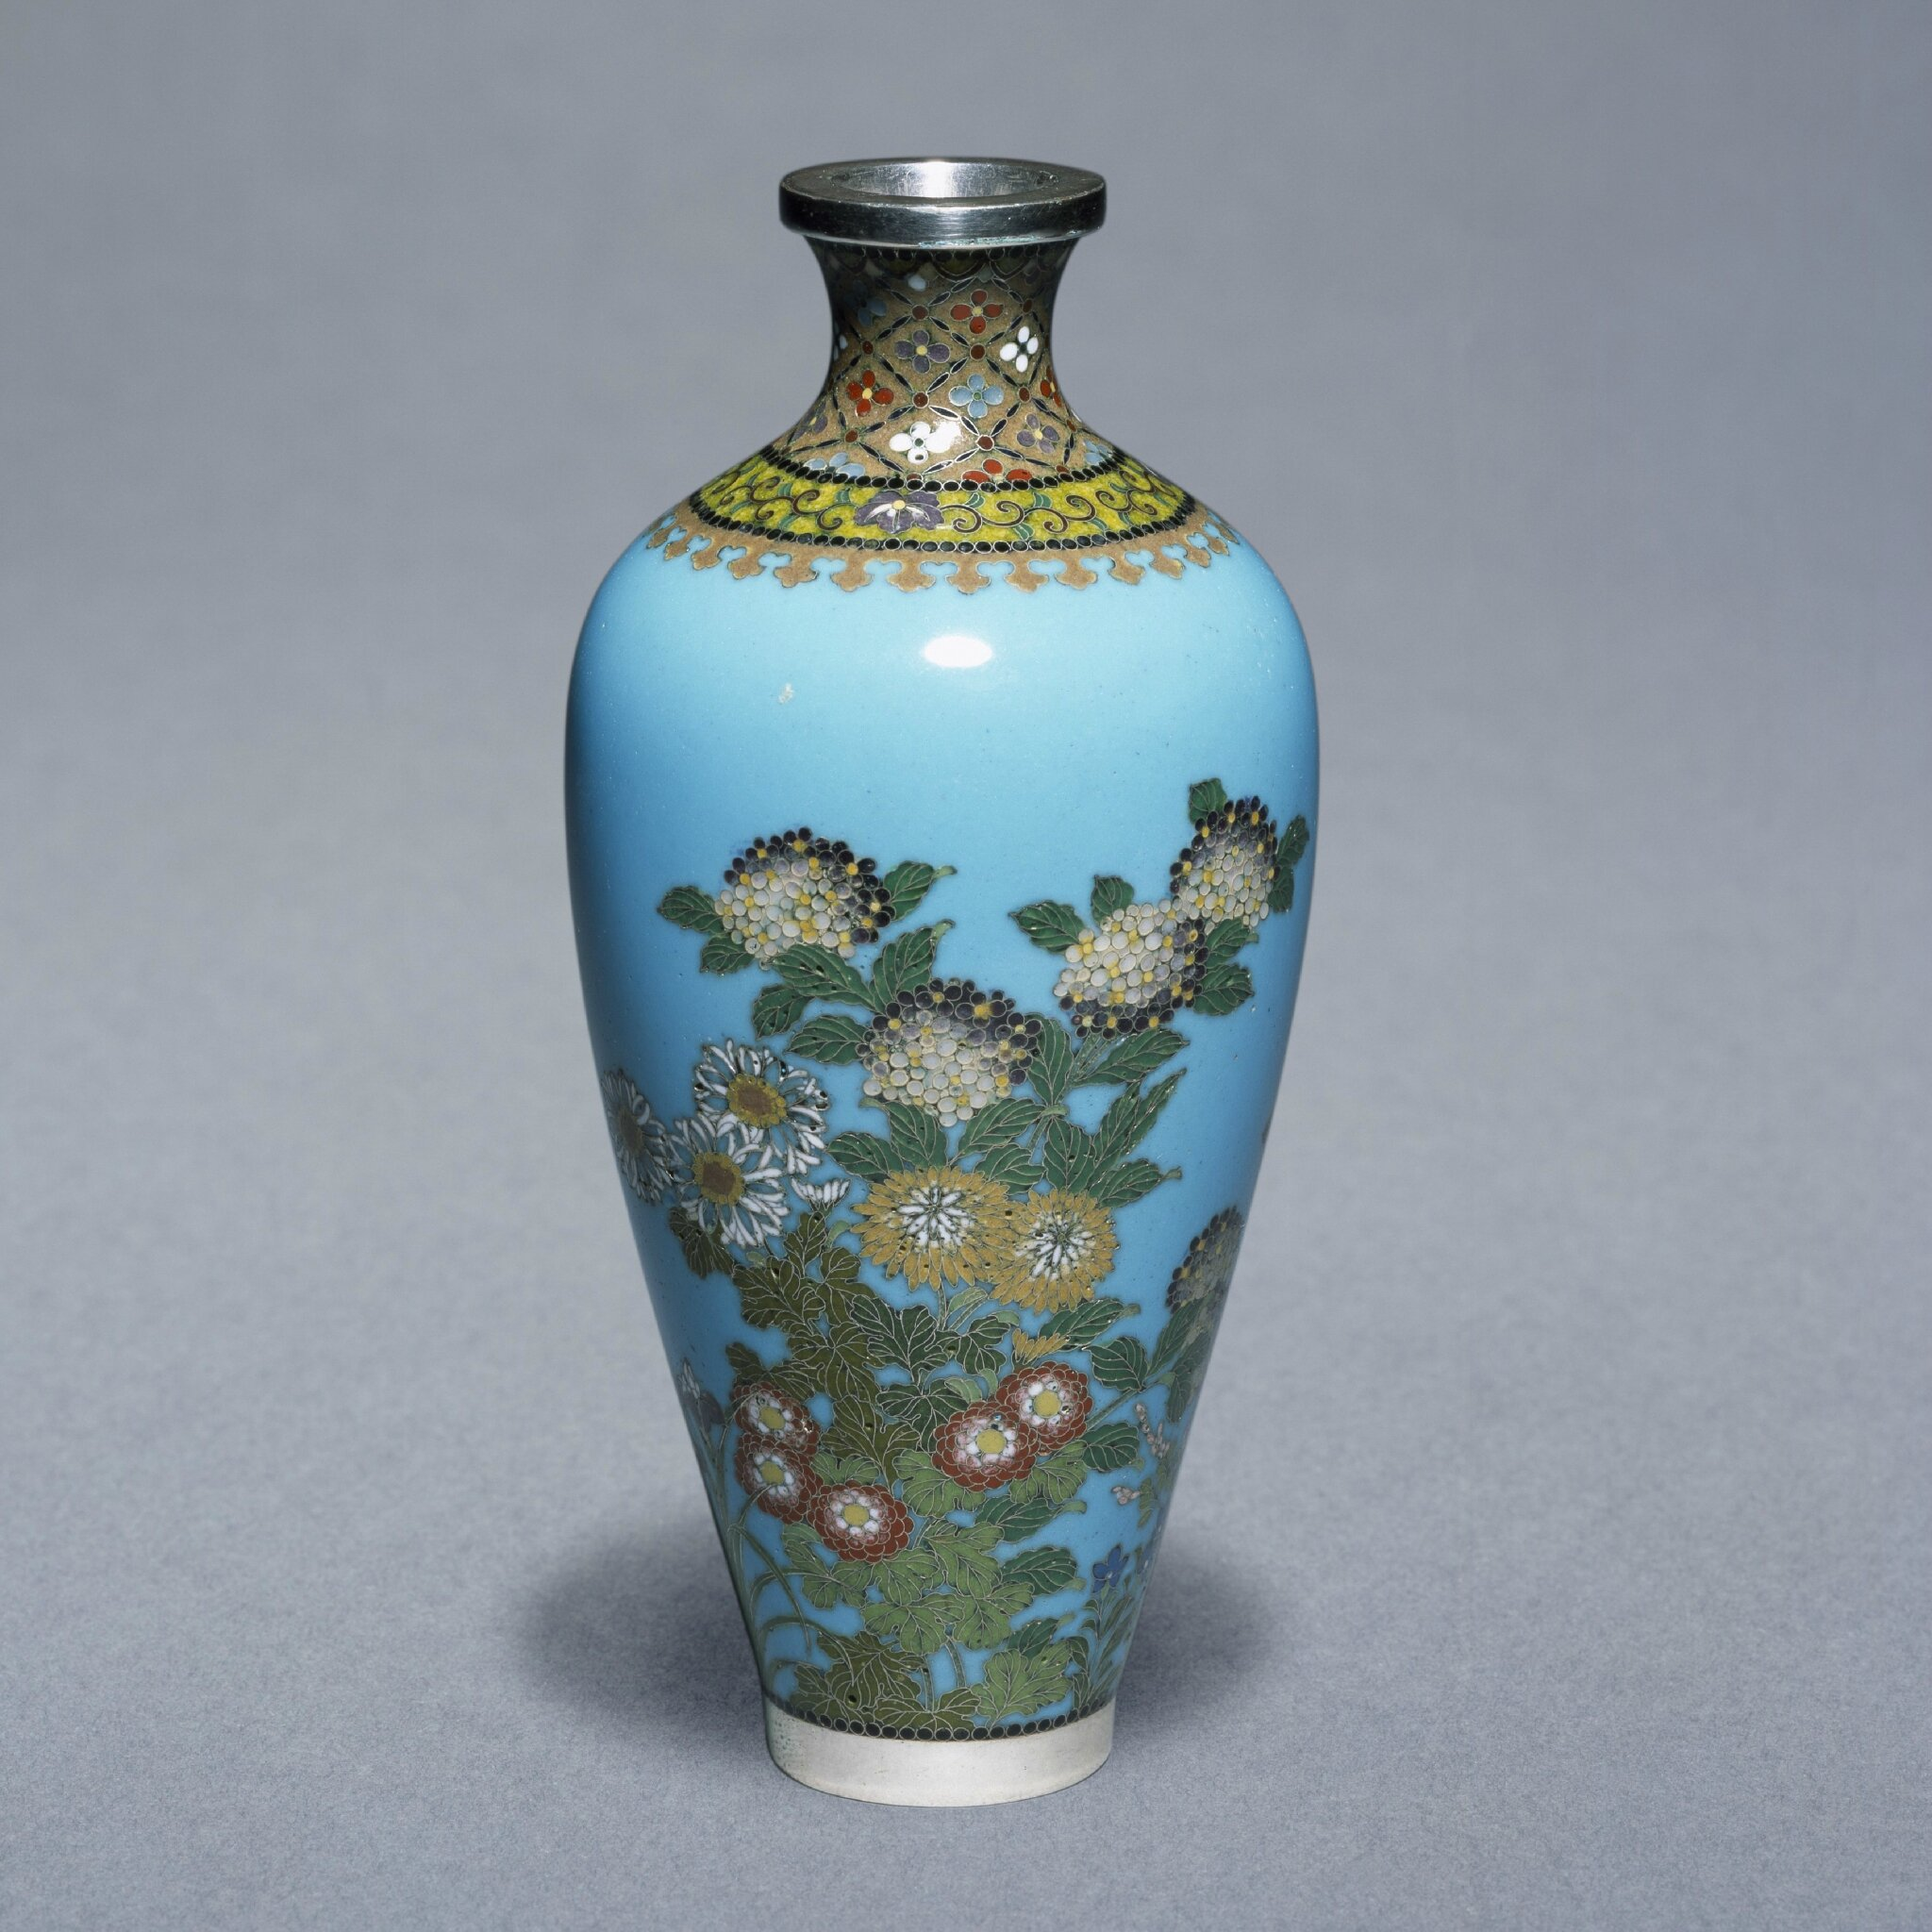 Japanese cloisonné enamels from the Victoria and Albert Museum on view at the Chester Beatty Library